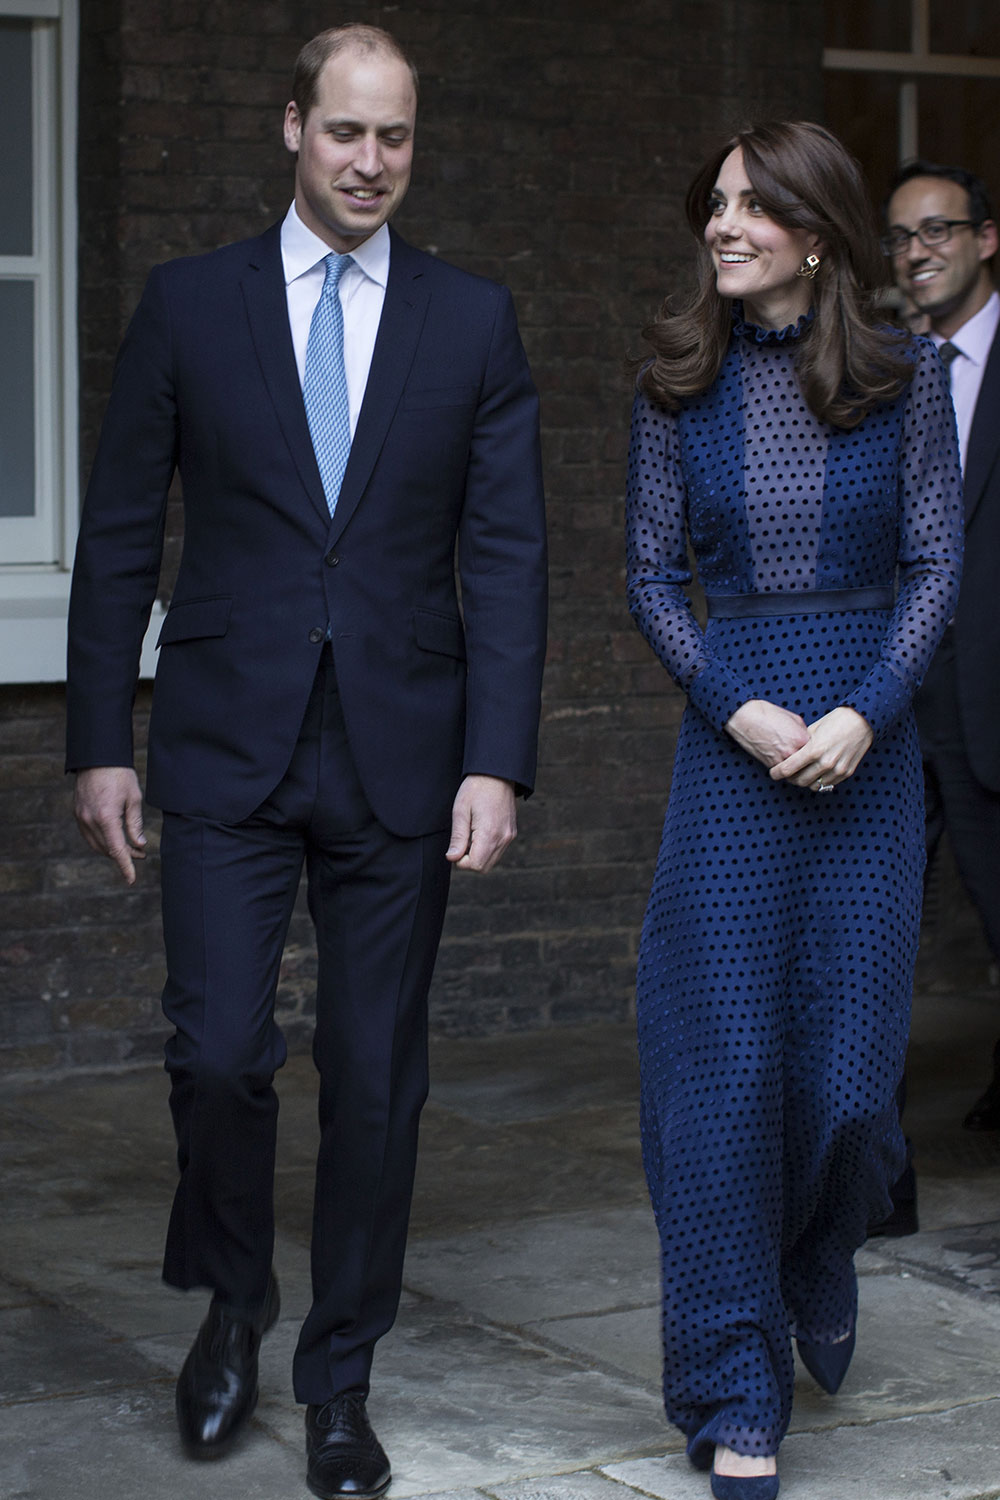 Catherine Duchess of Cambridge Photo C GETTY IMAGES 0459